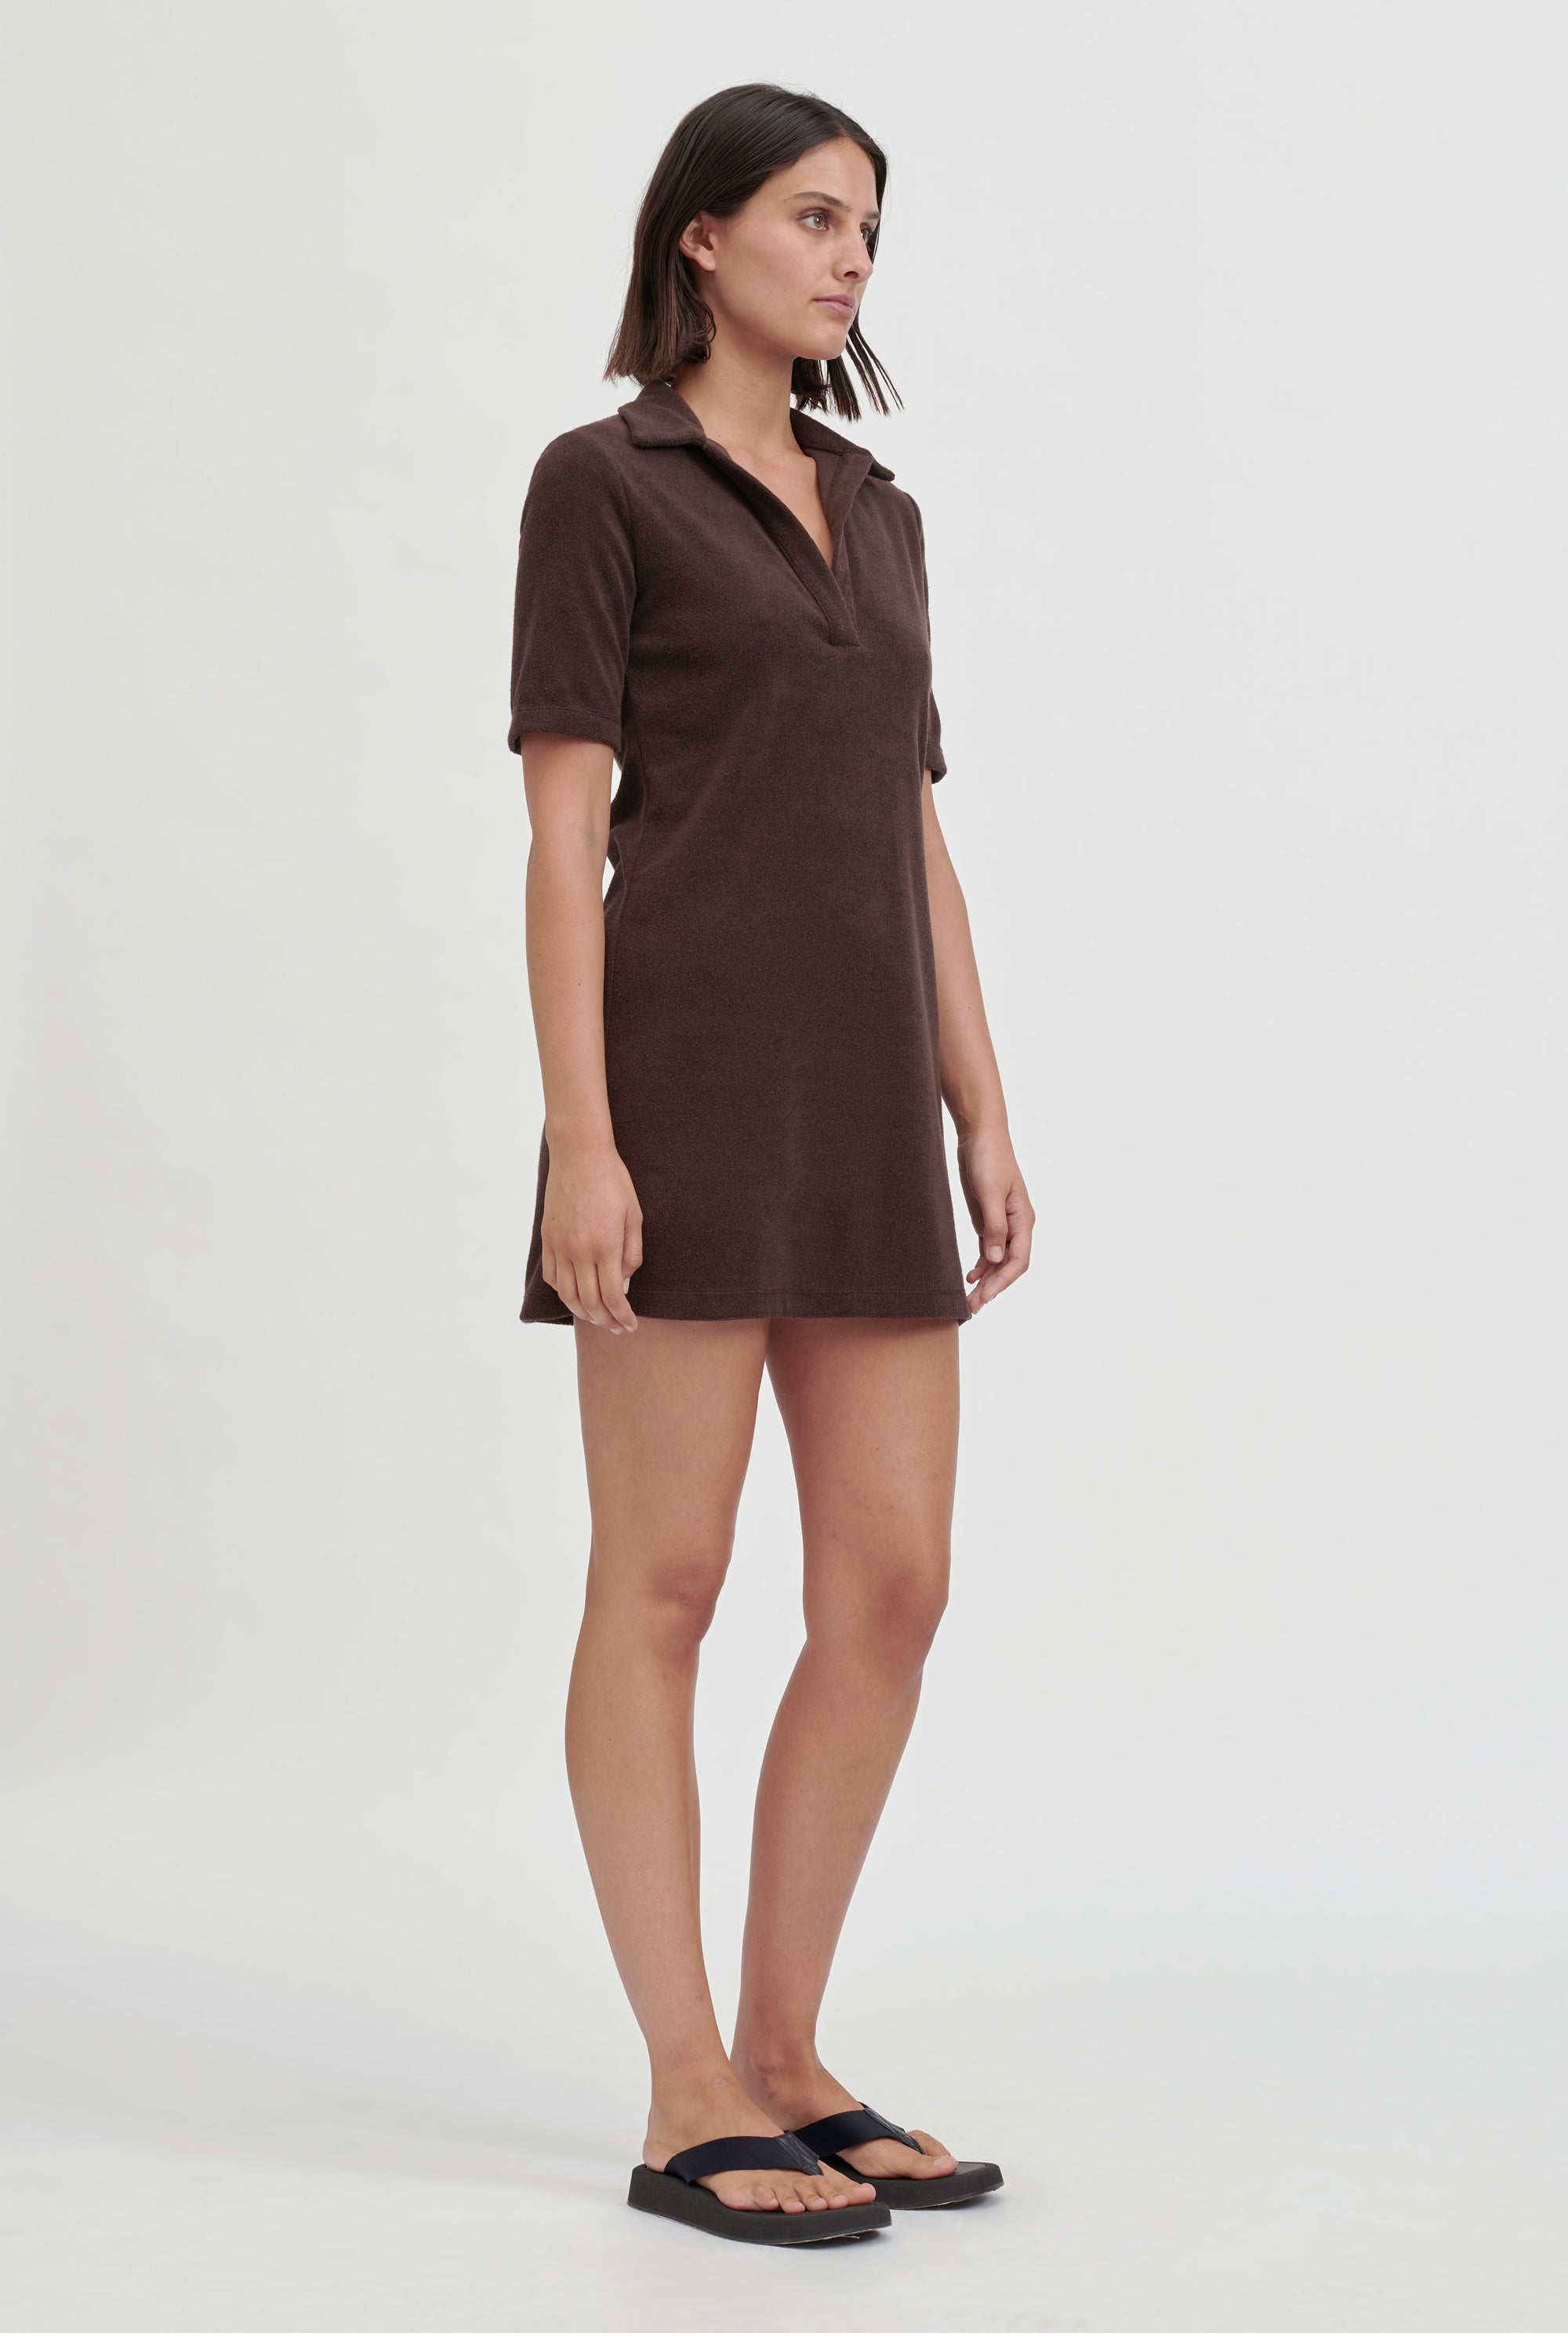 Terry Polo Dress - Cacao